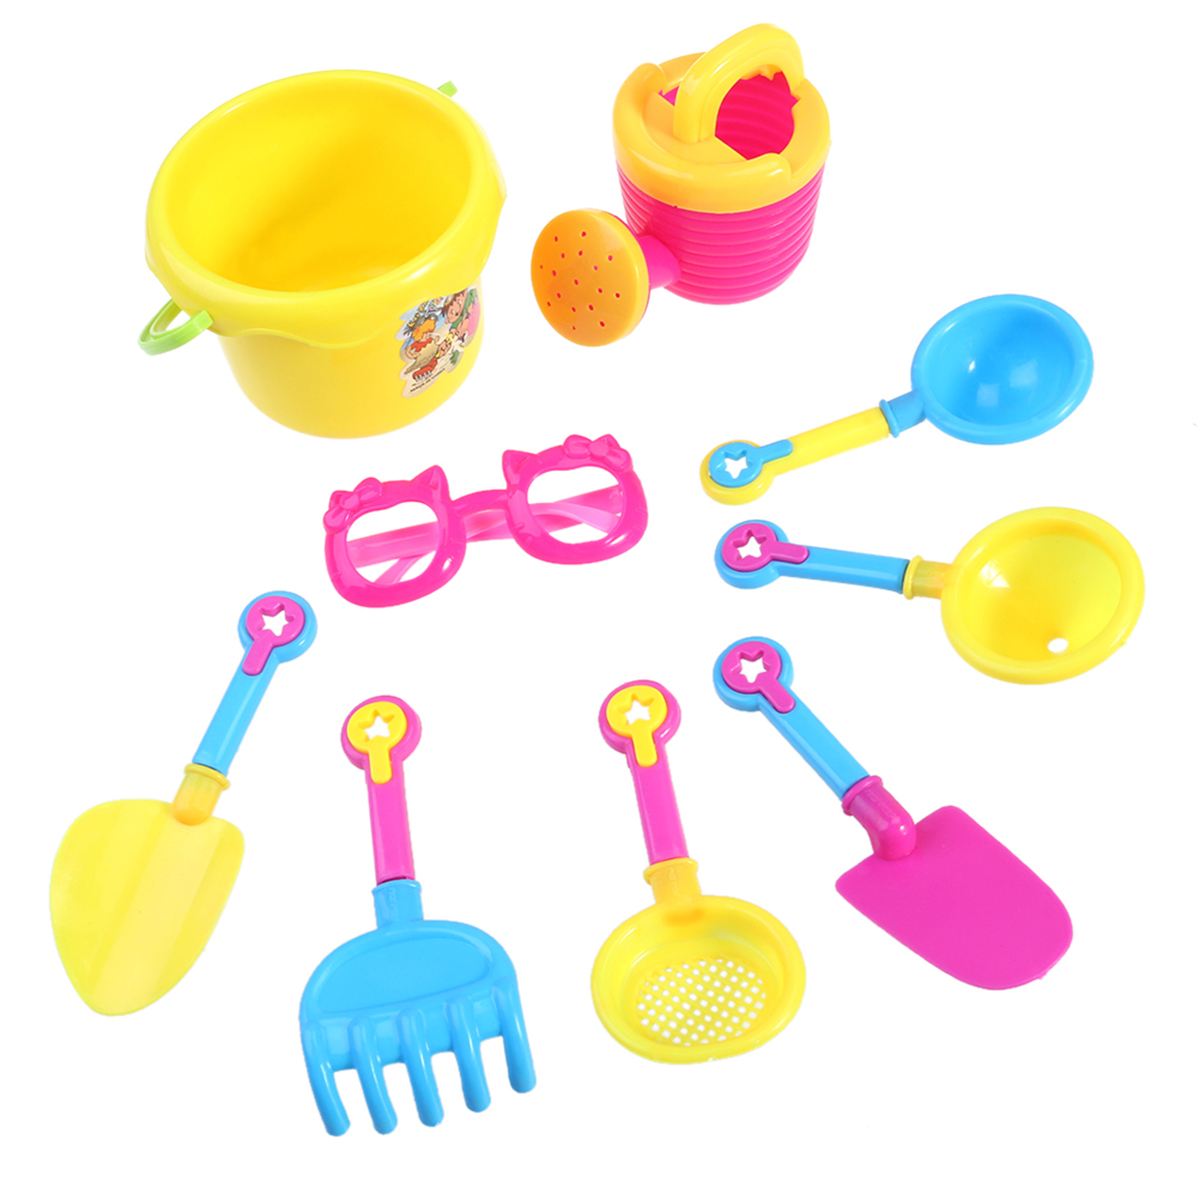 9pcs Beach Bucket Sand Castle Play Toy Set for Kids (Random Color & Tools) by